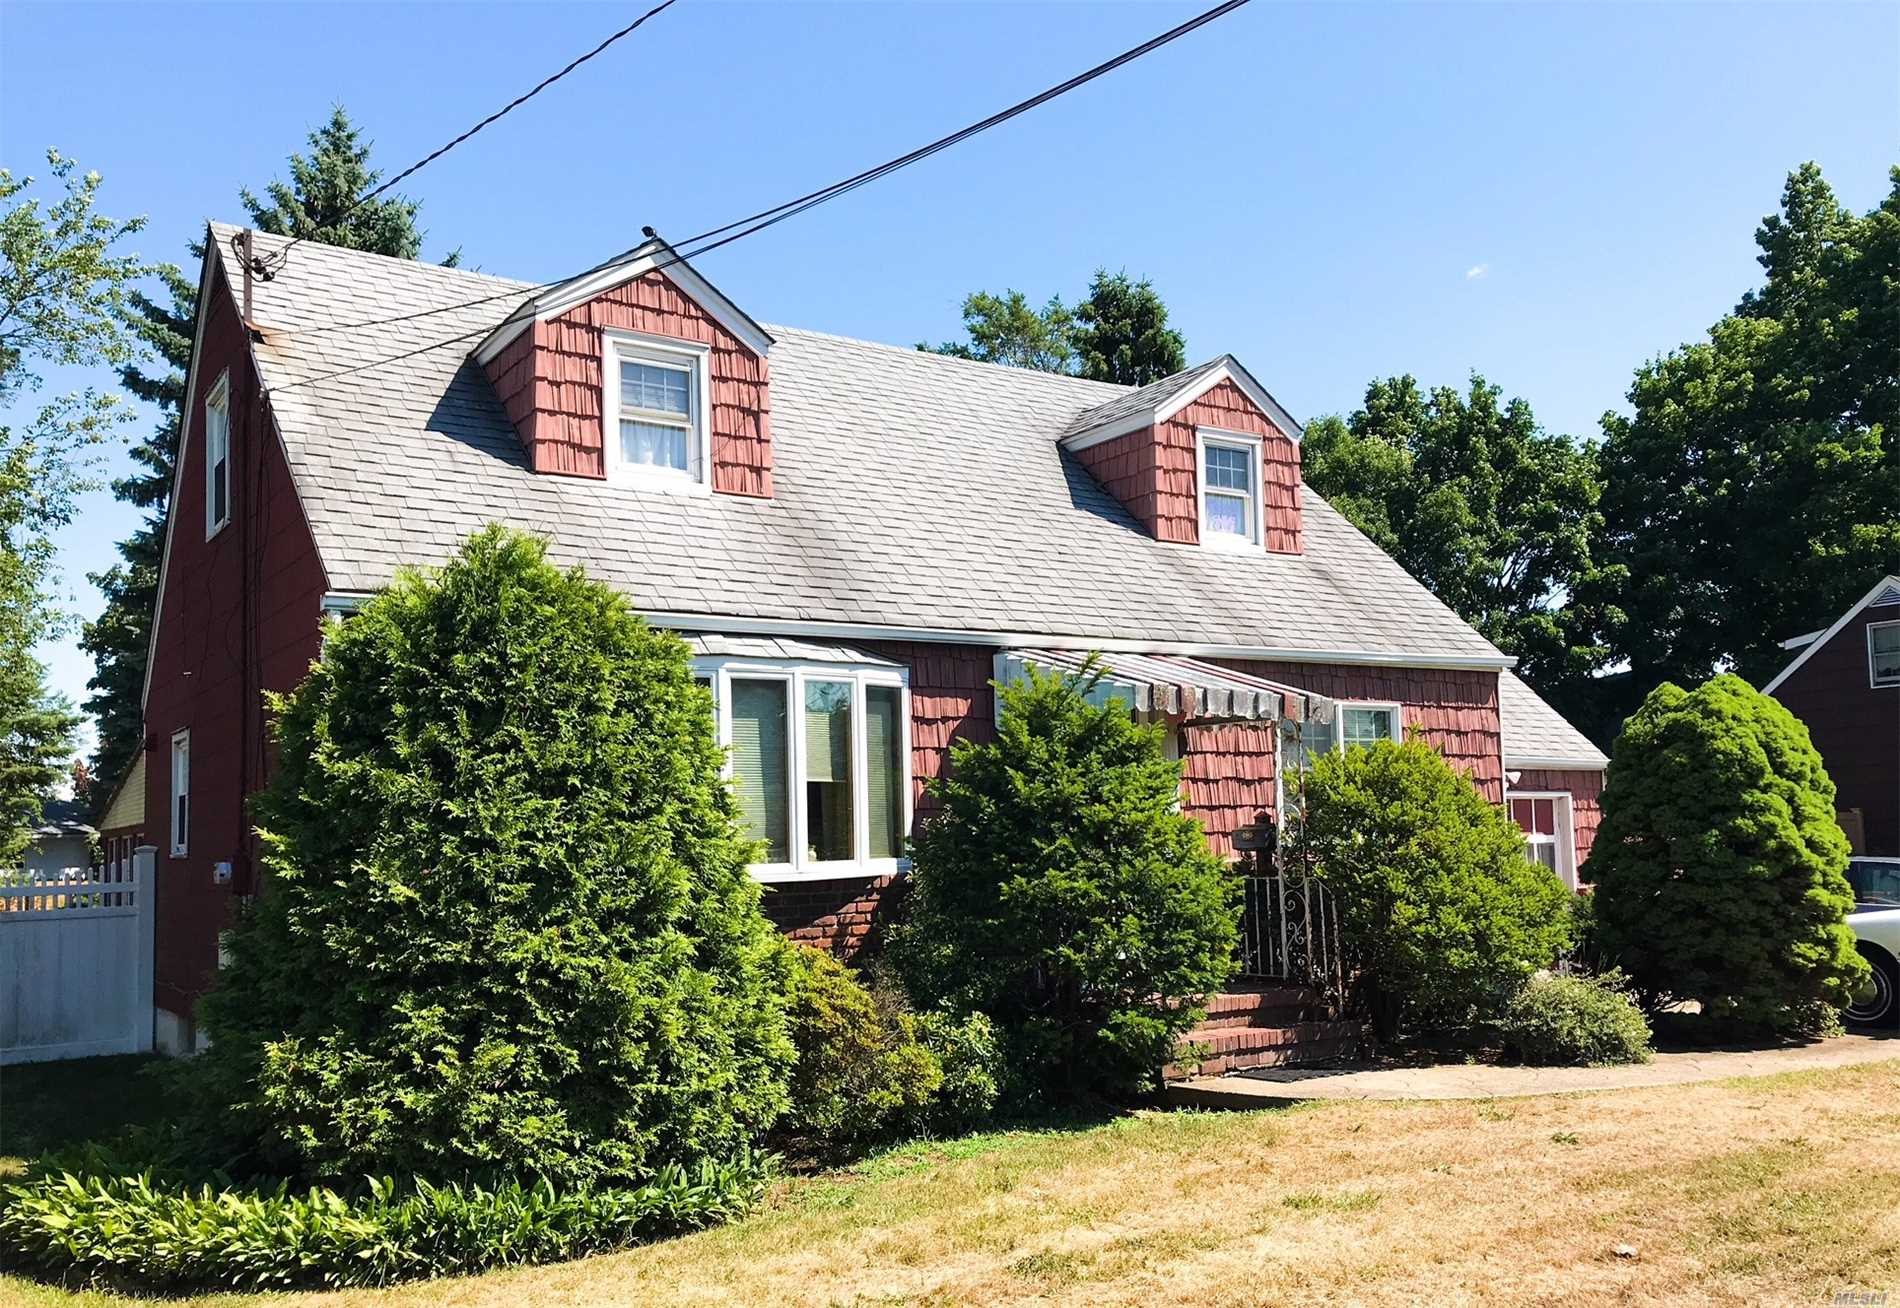 Extra Large Lot, Great Location, Very Large Wide Line Cape, Needs Tlc But Has So M Much Potential. And Low Taxes!